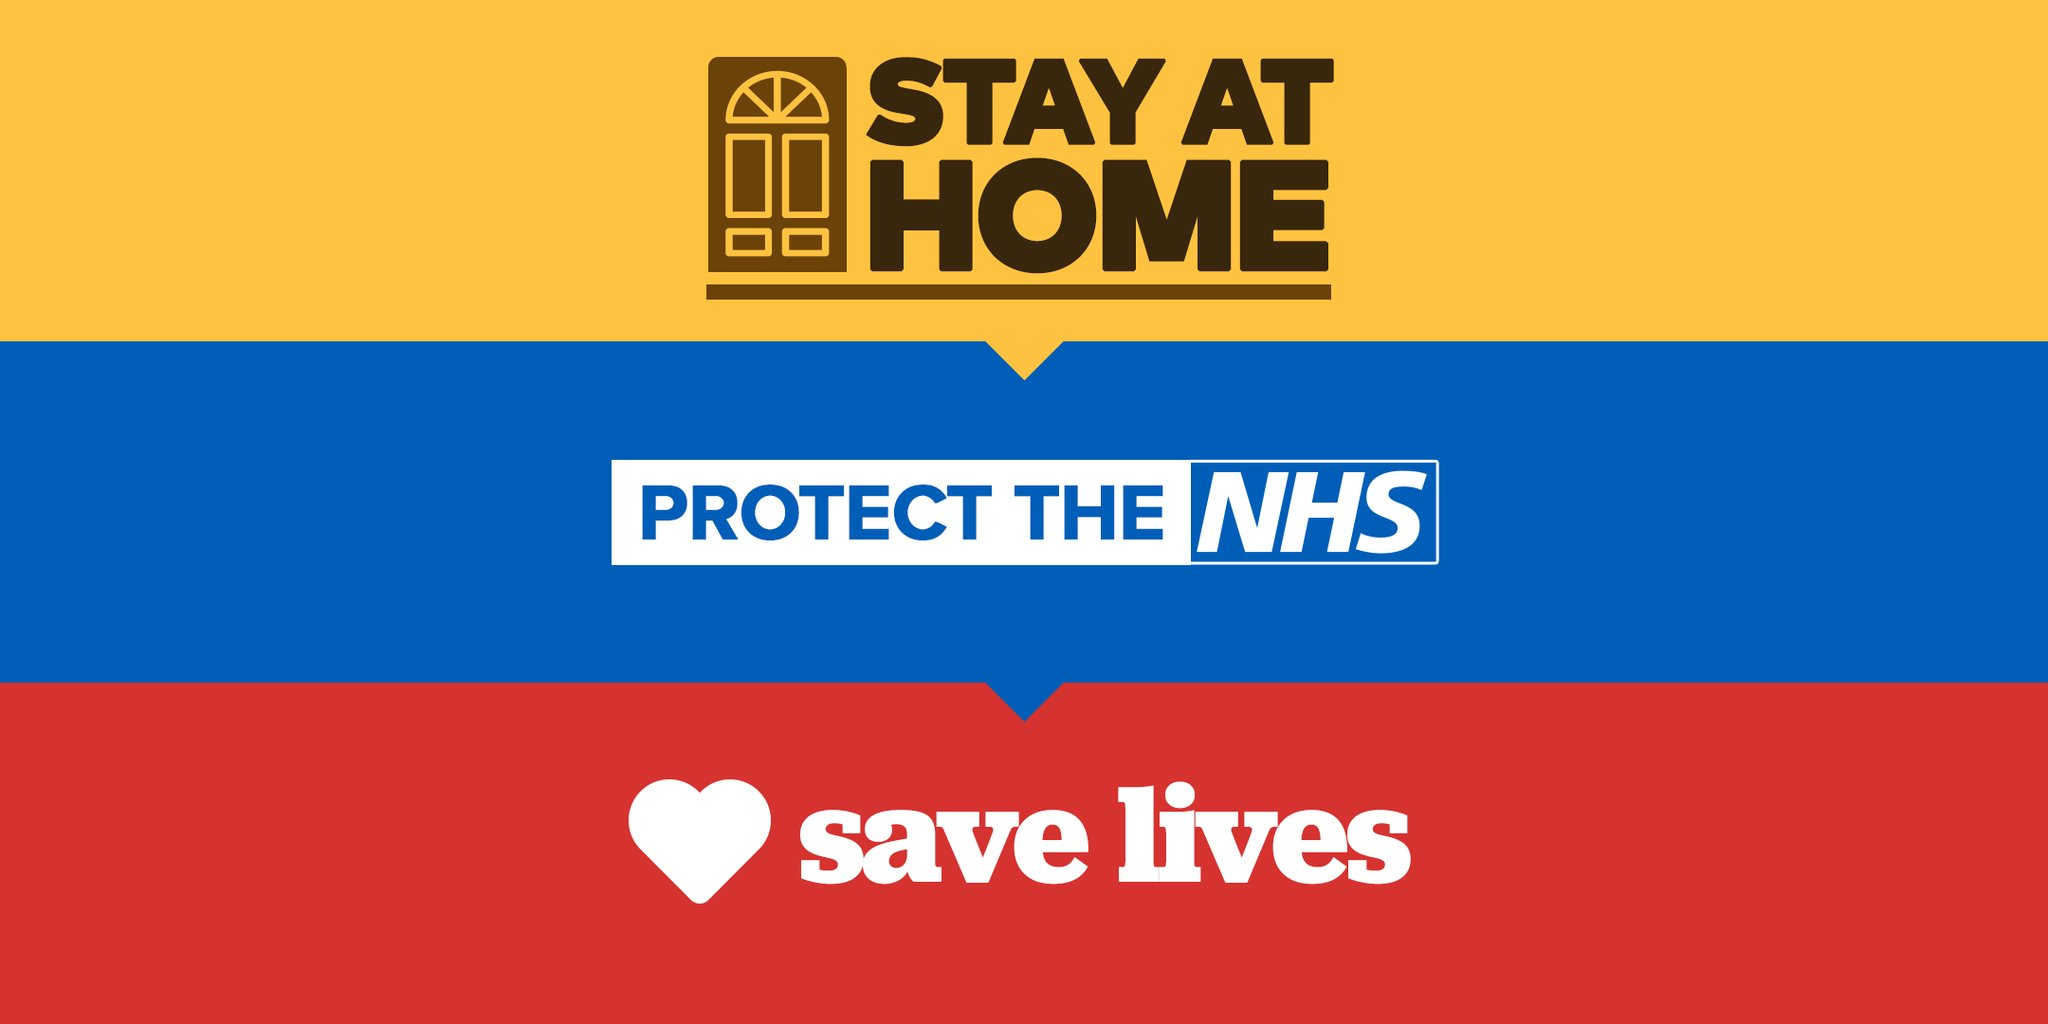 Stay at home. Protect the NHS. Save Lives government logo